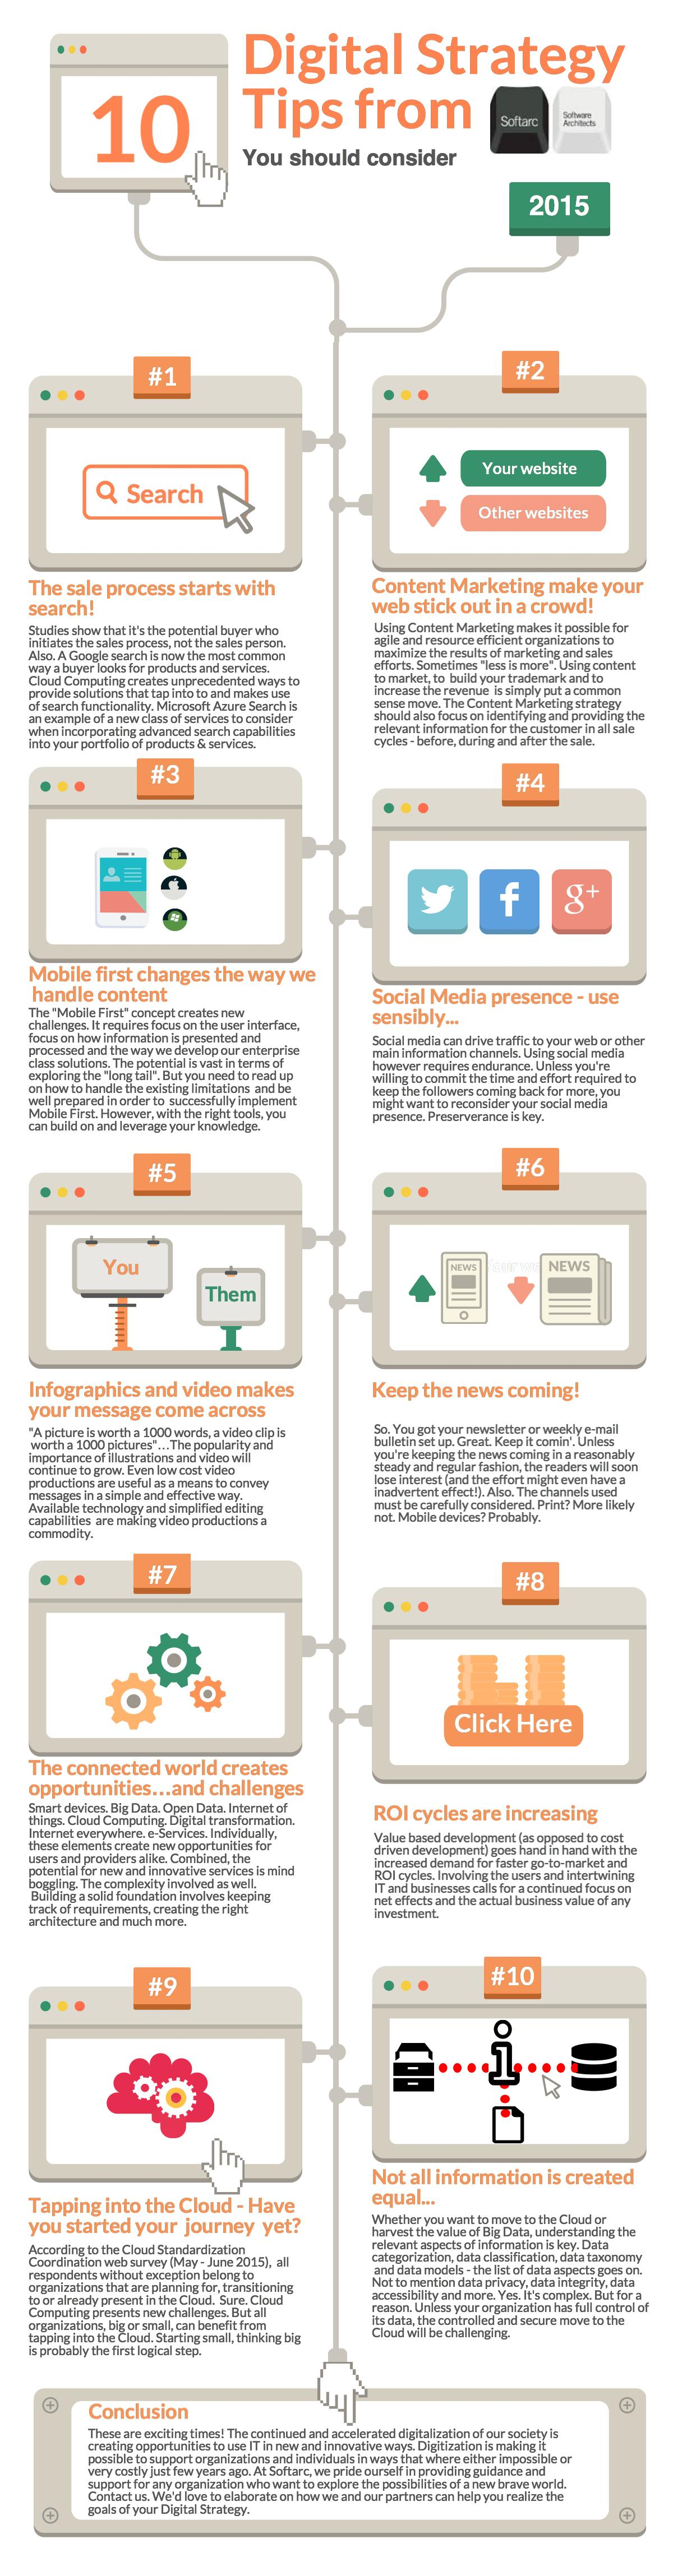 Ten Top Digital Strategy tips